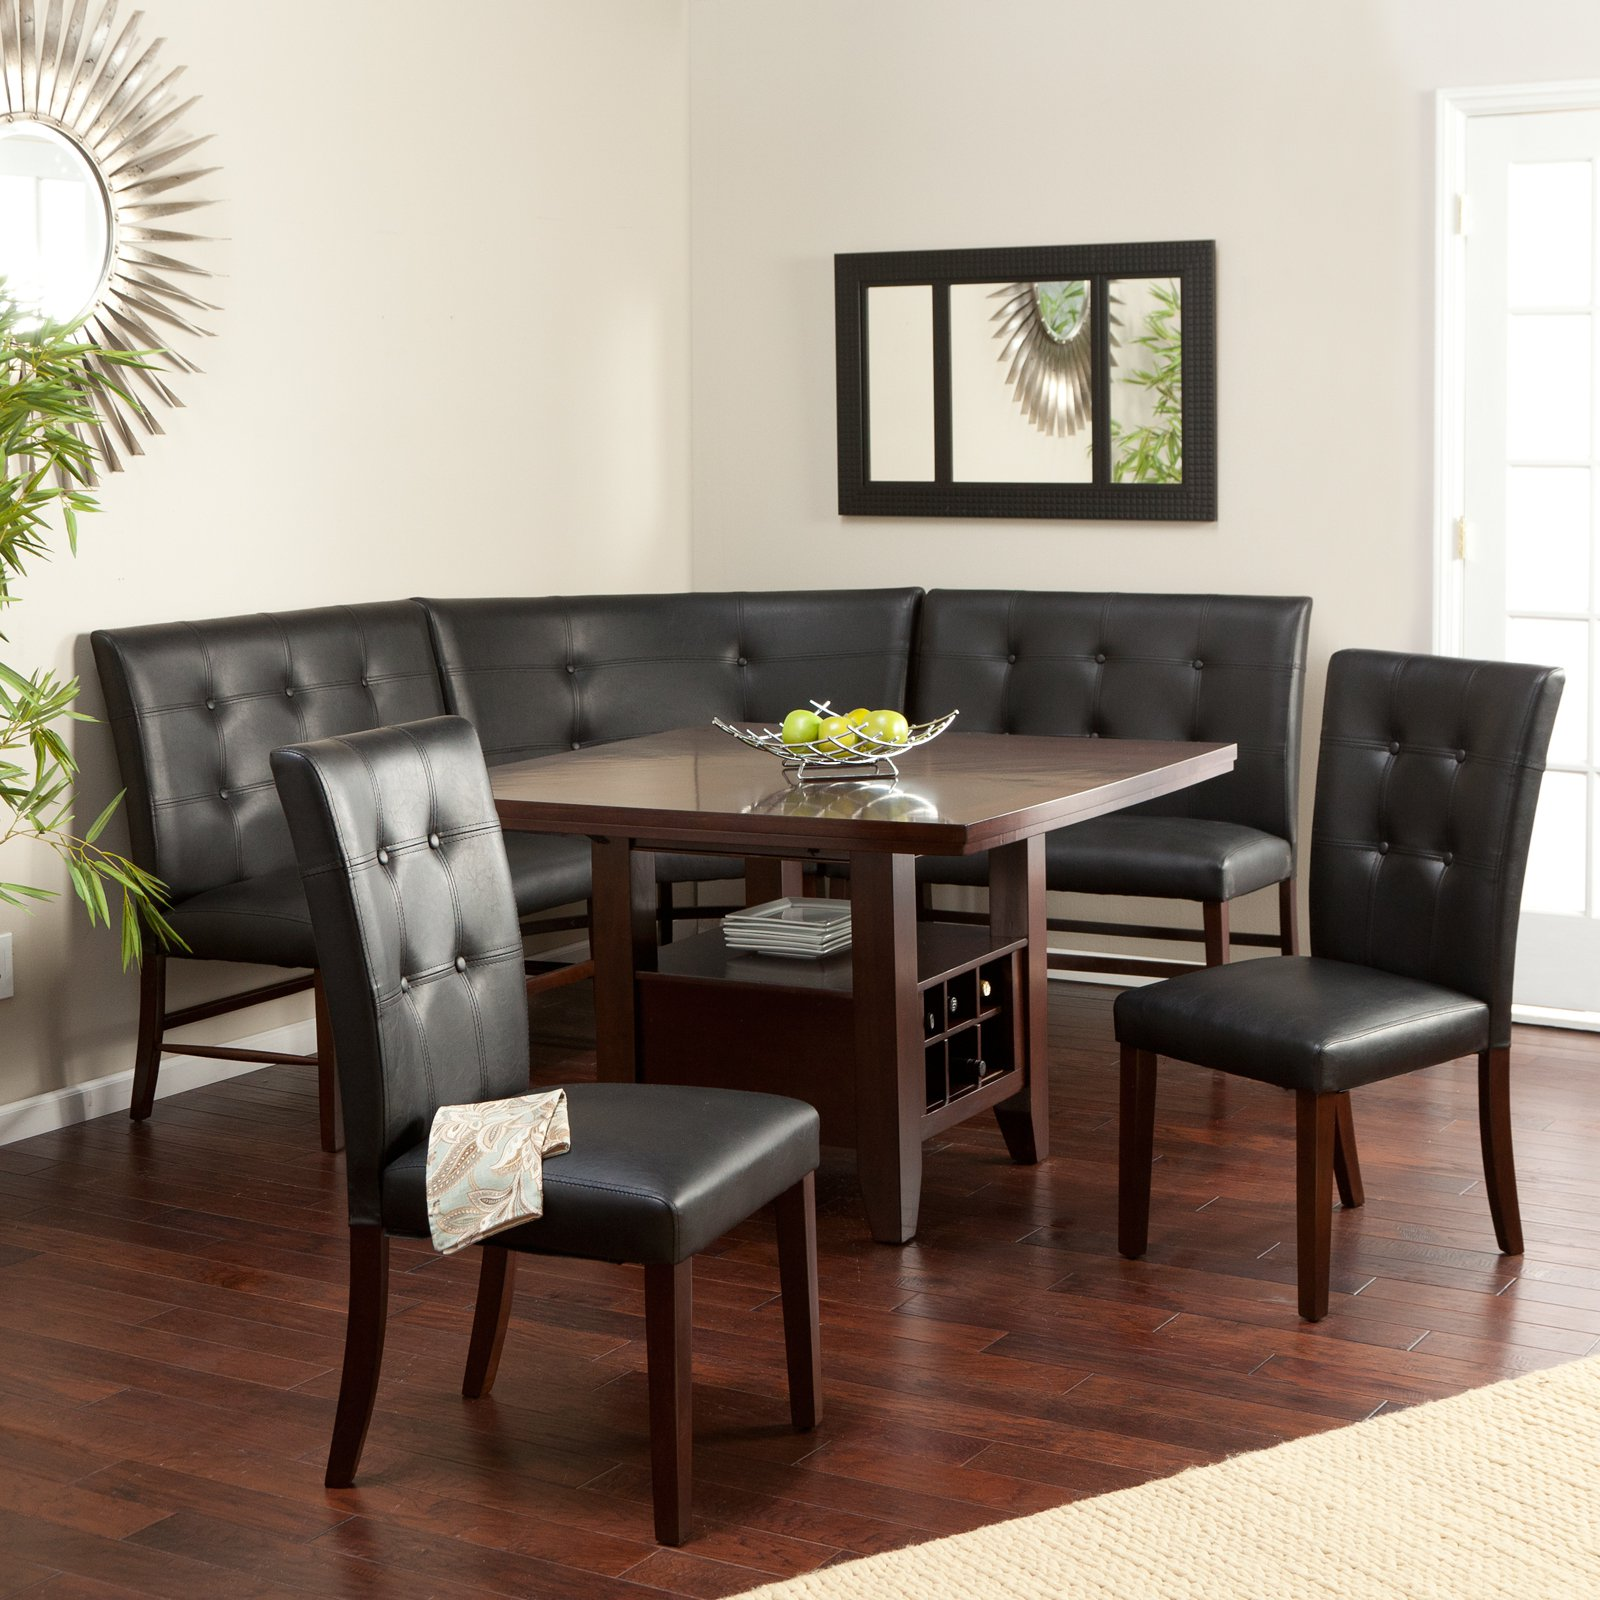 Mainstays forest hills 5 piece dining set red walmart com